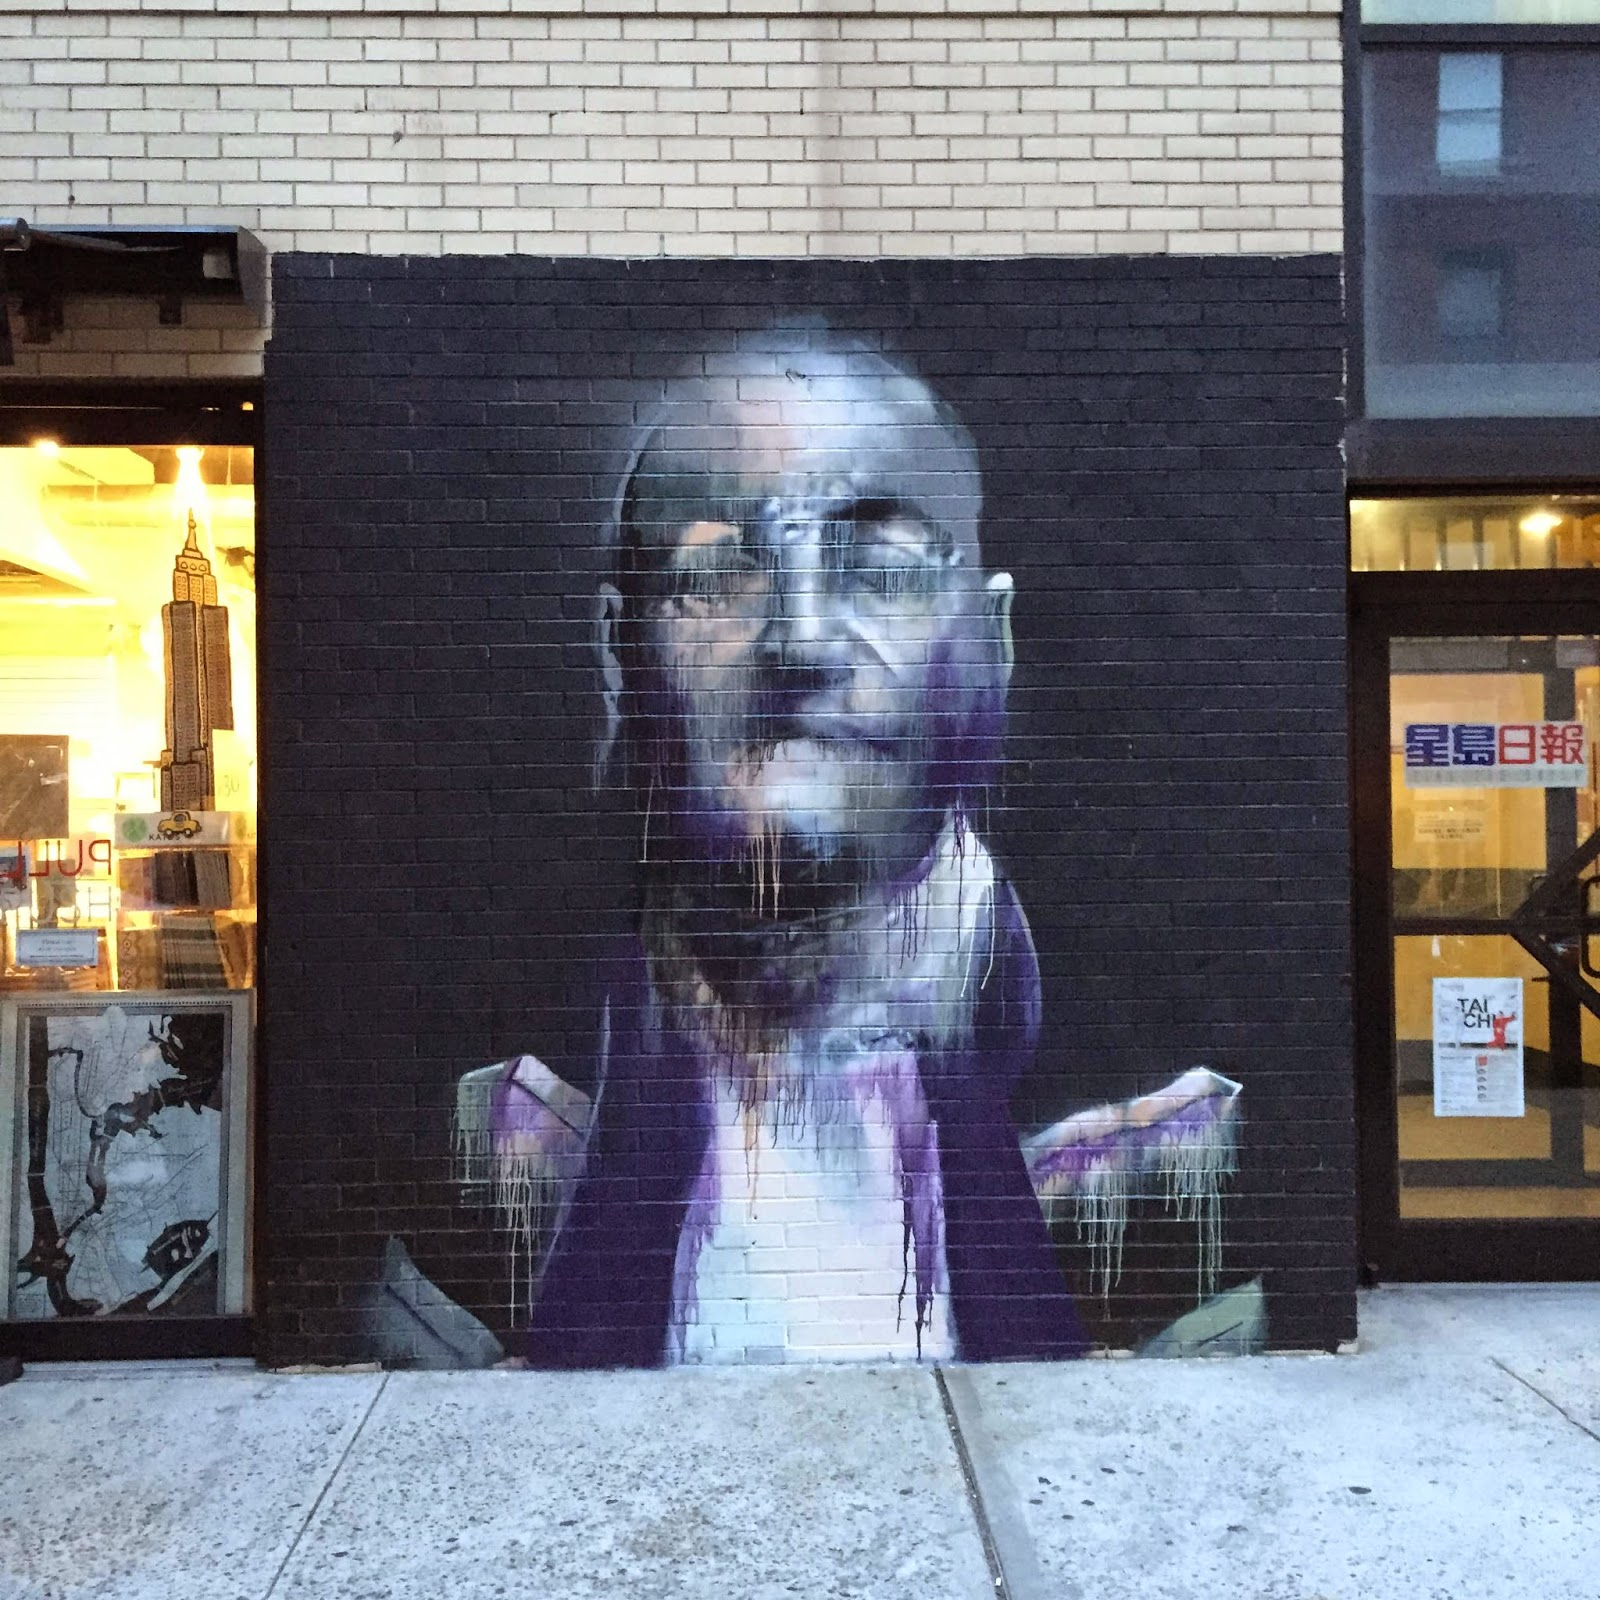 Conor Harrington is still in new york city where he spent his day working on a second new piece for the Lisa Project in manhattan.